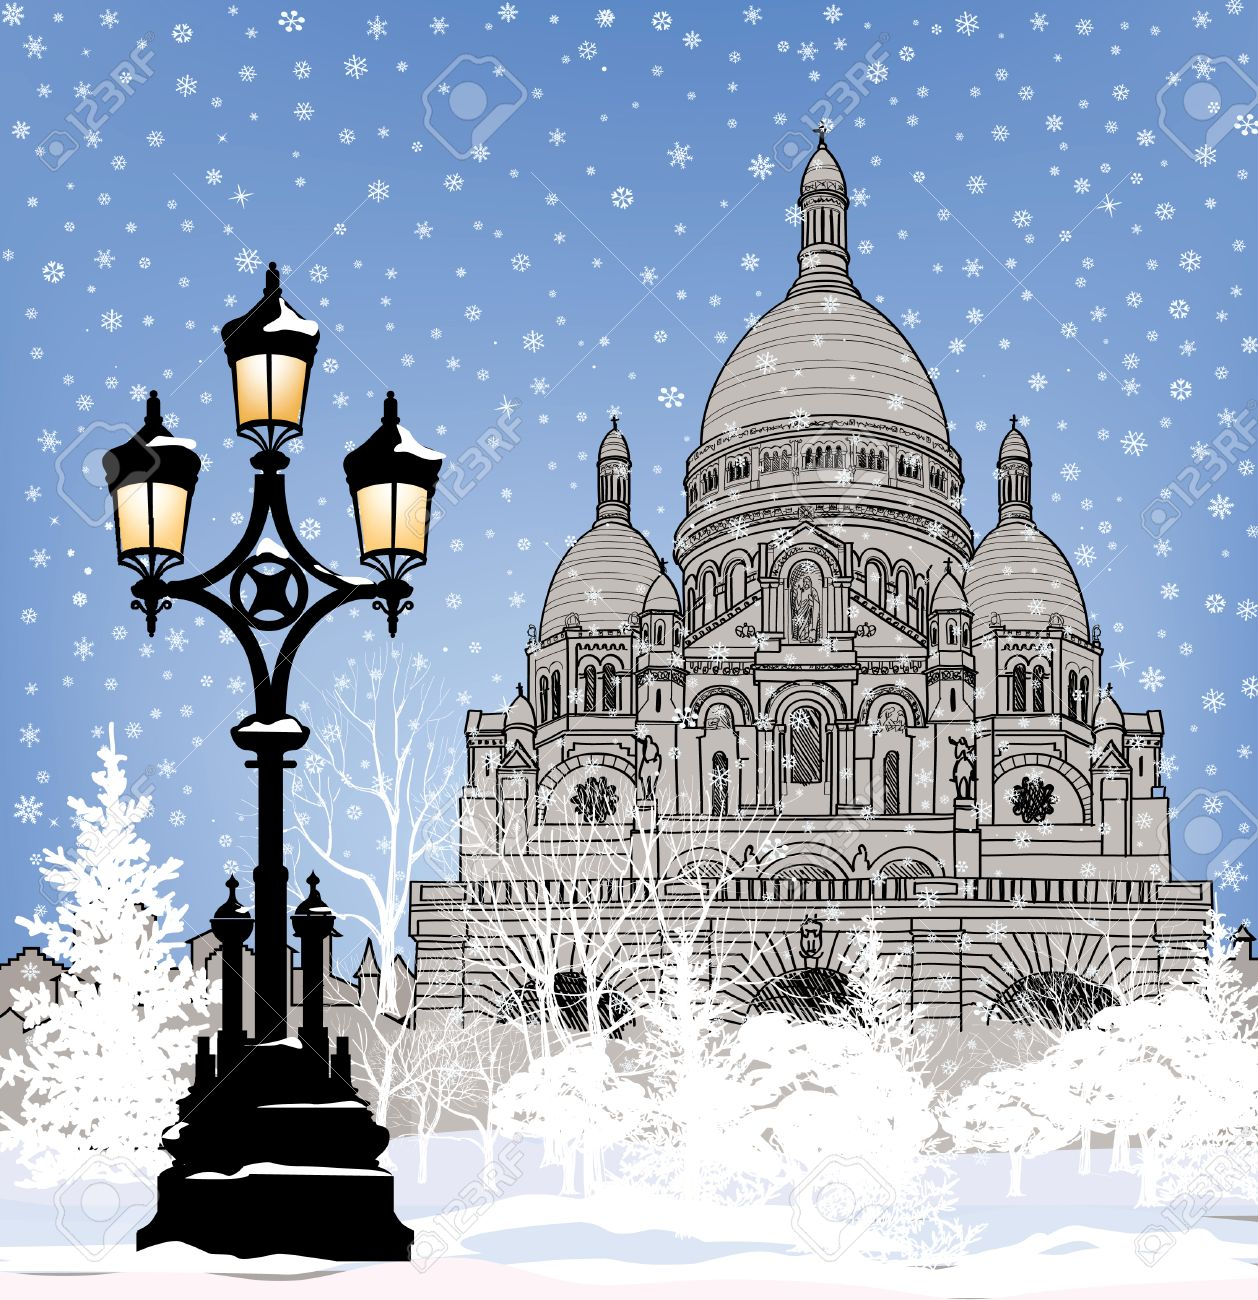 Snowy City Wallpaper Winter Christmas Holiday Snow Background Paris Landmark In Stock